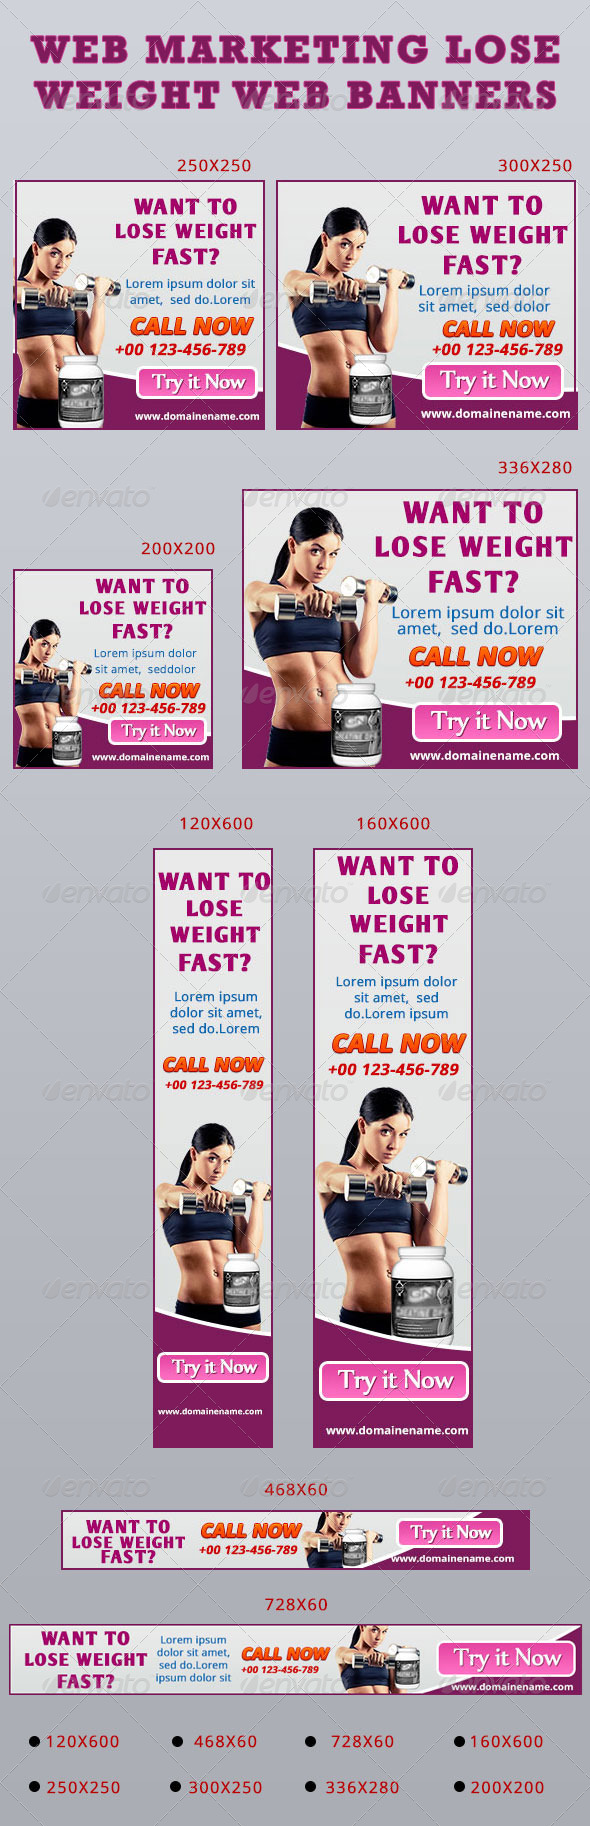 GraphicRiver Web Marketing Lose Weight Web Banners 4795822